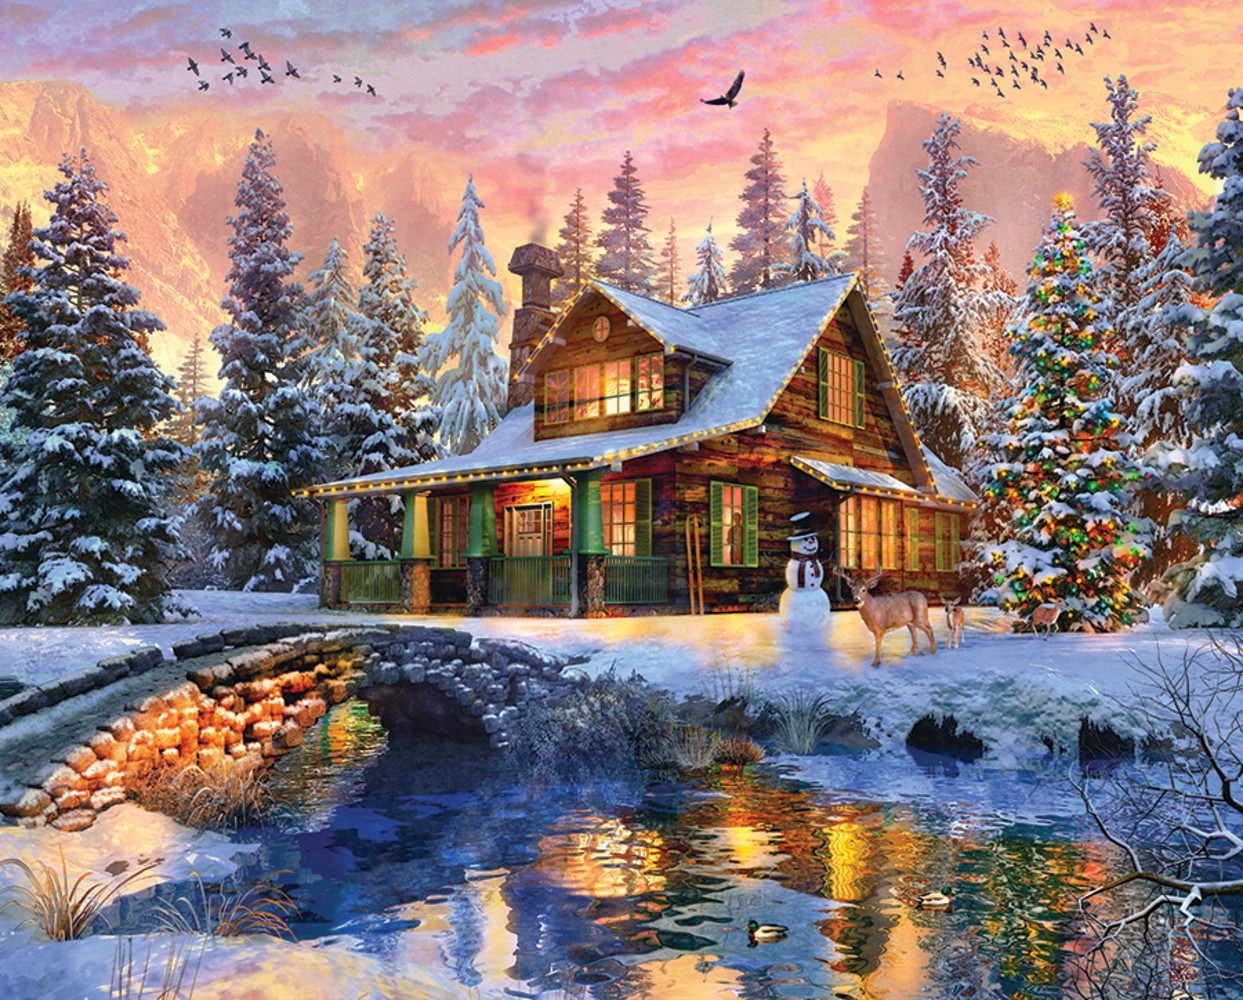 Rocky Mountain Christmas.Details About Springbok Rocky Mountain Christmas 1000 Piece Jigsaw Puzzle